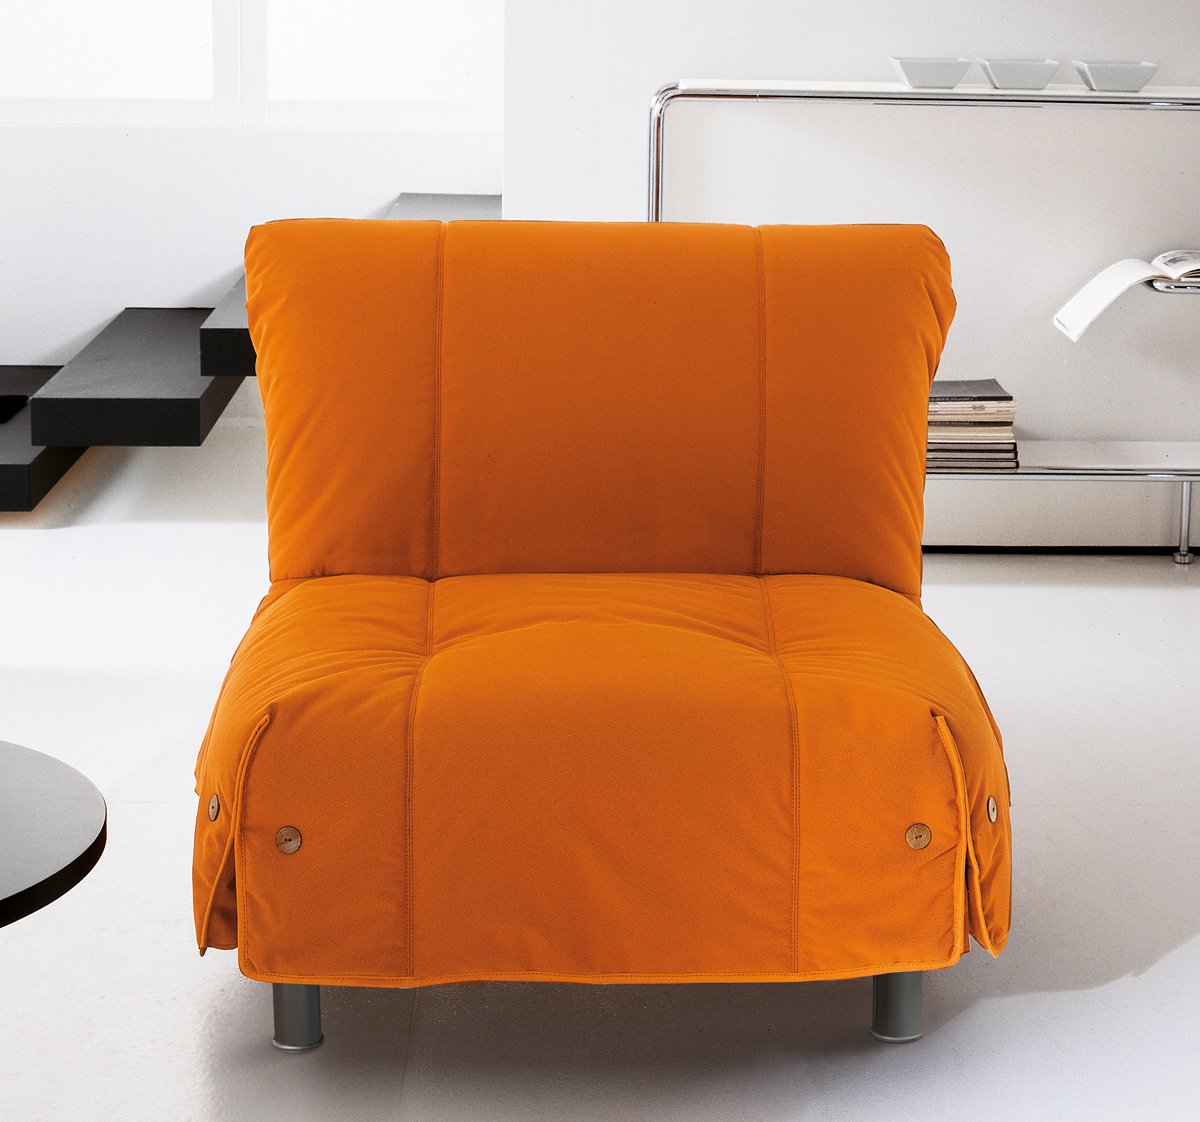 Go Modern Ltd > Sofa Beds > Bonaldo Aurora Armchair Bed